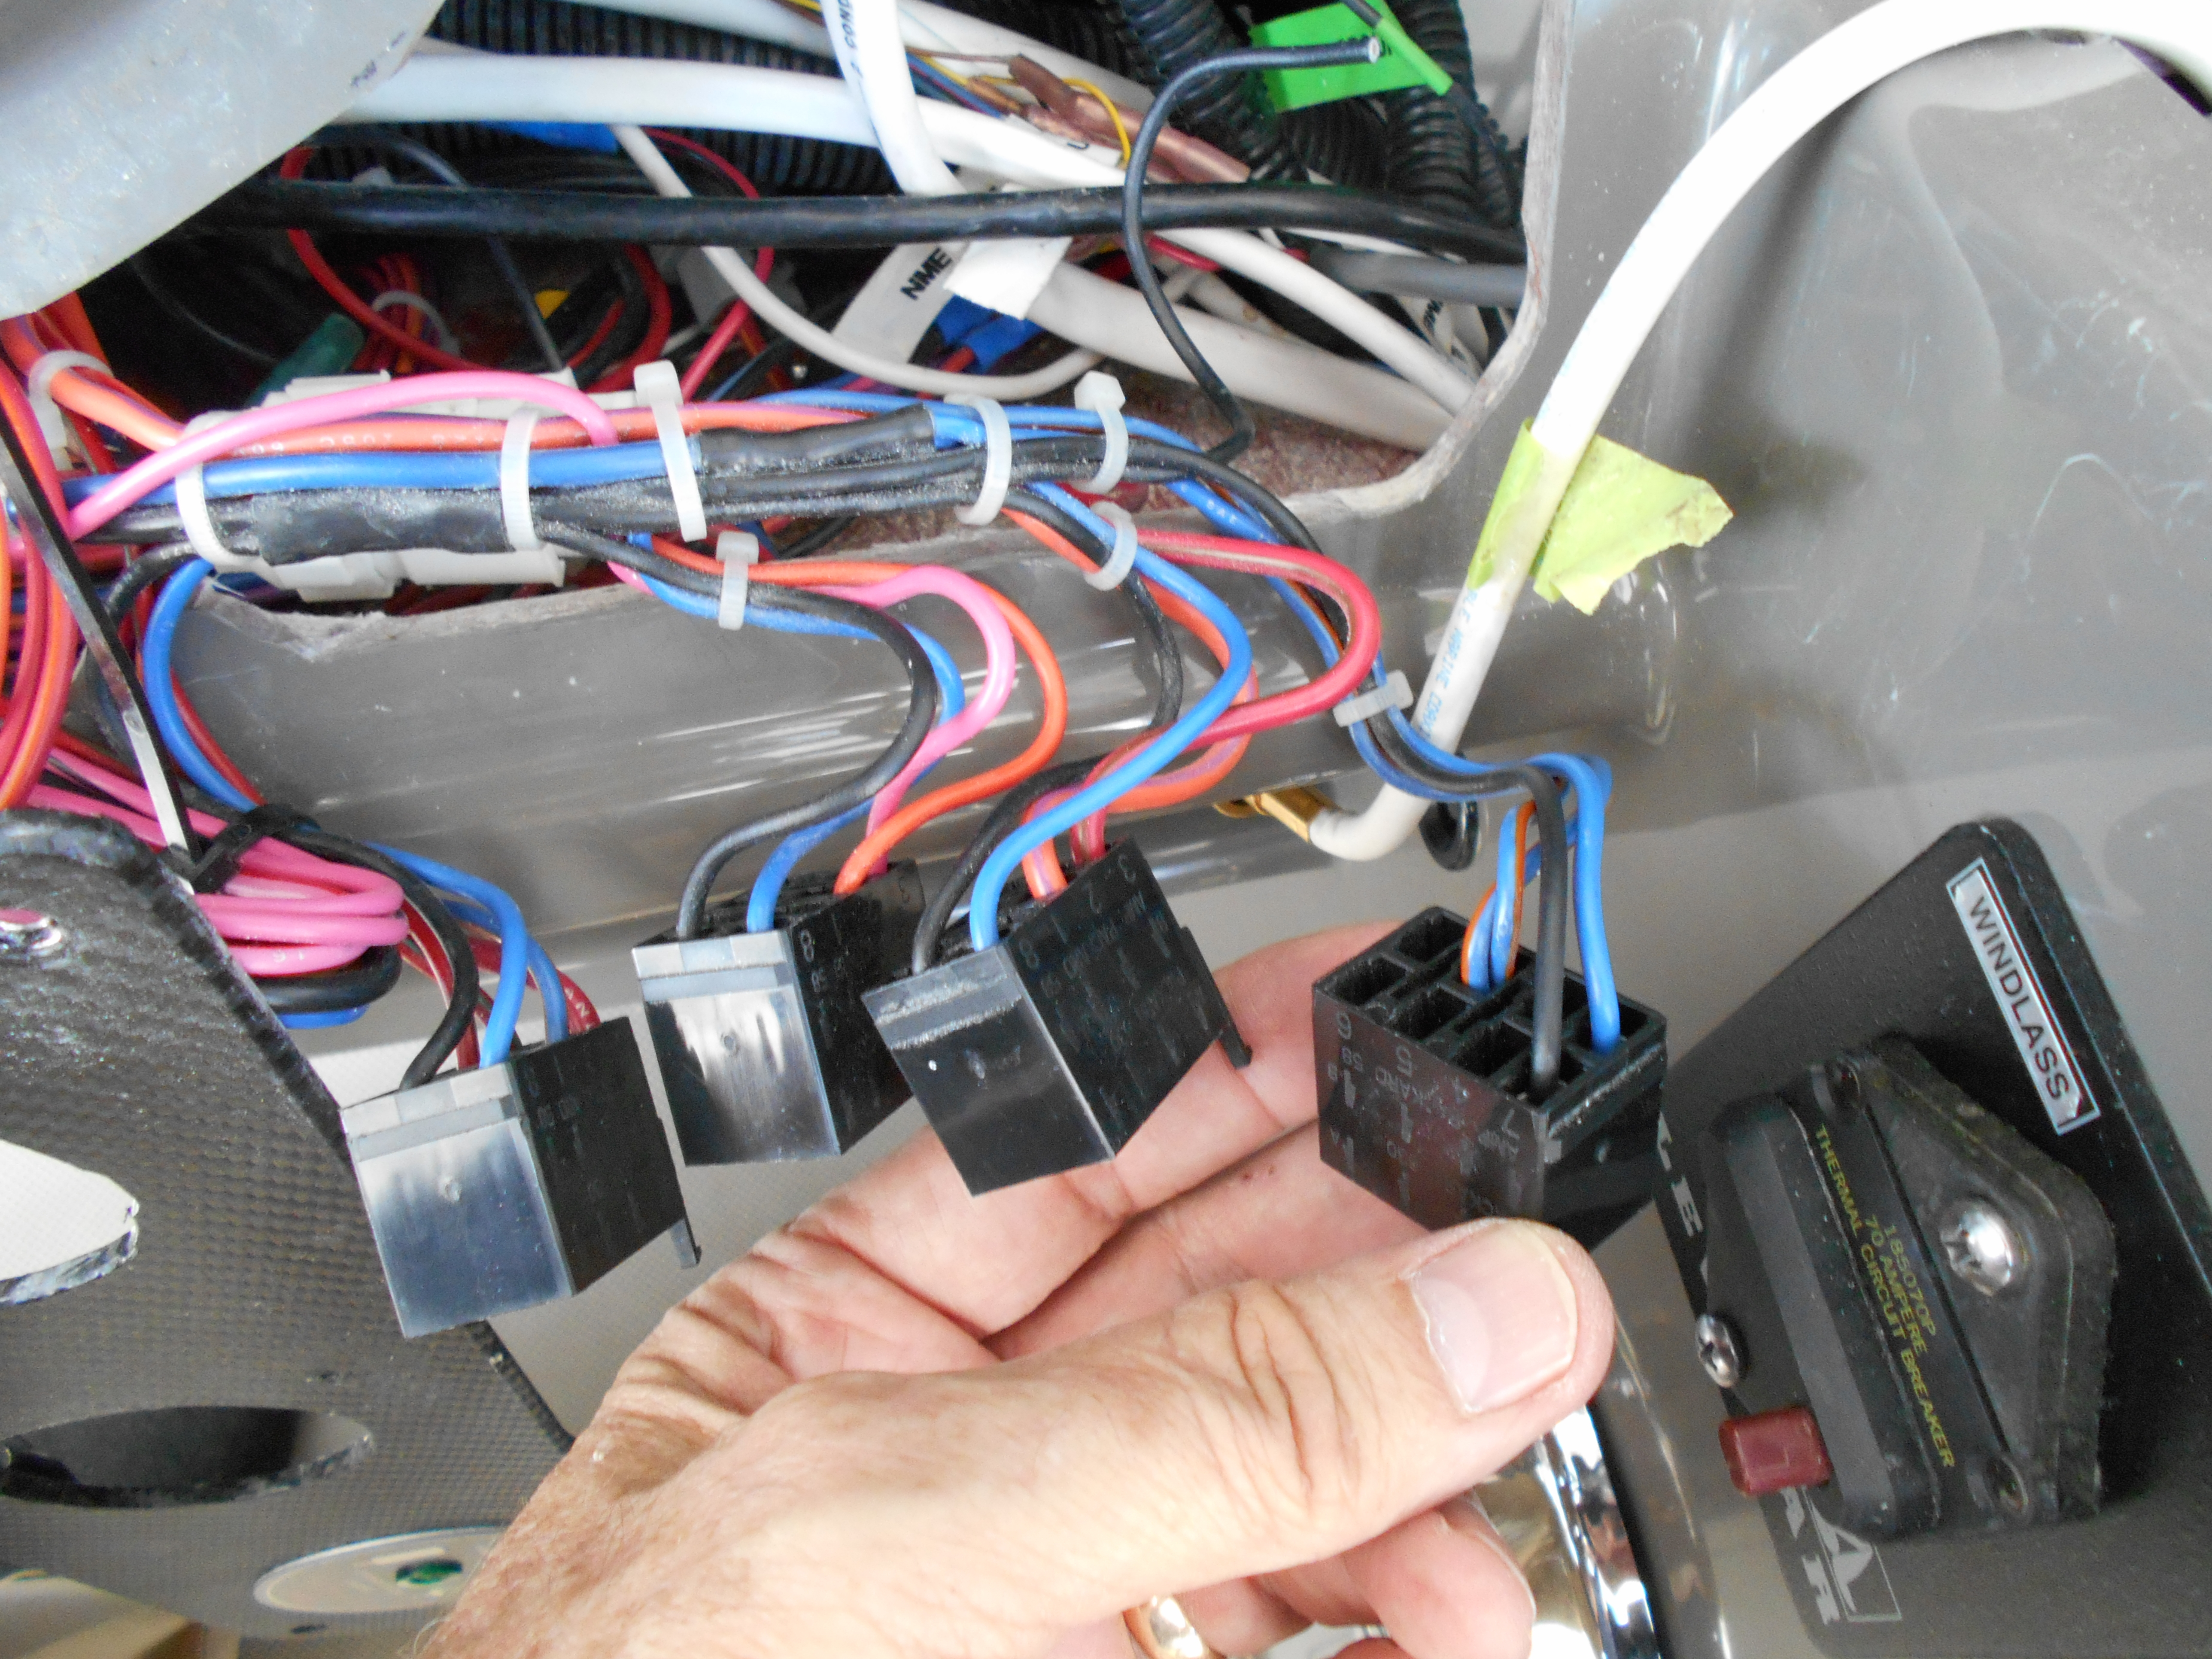 Wiring Fish Finder To Switch Trusted Diagram Questions Page 1 Iboats Boating Forums 514442 Dash Accessory Switches Rinker 360 Boats Boat Battery I Have Radar A Mfd